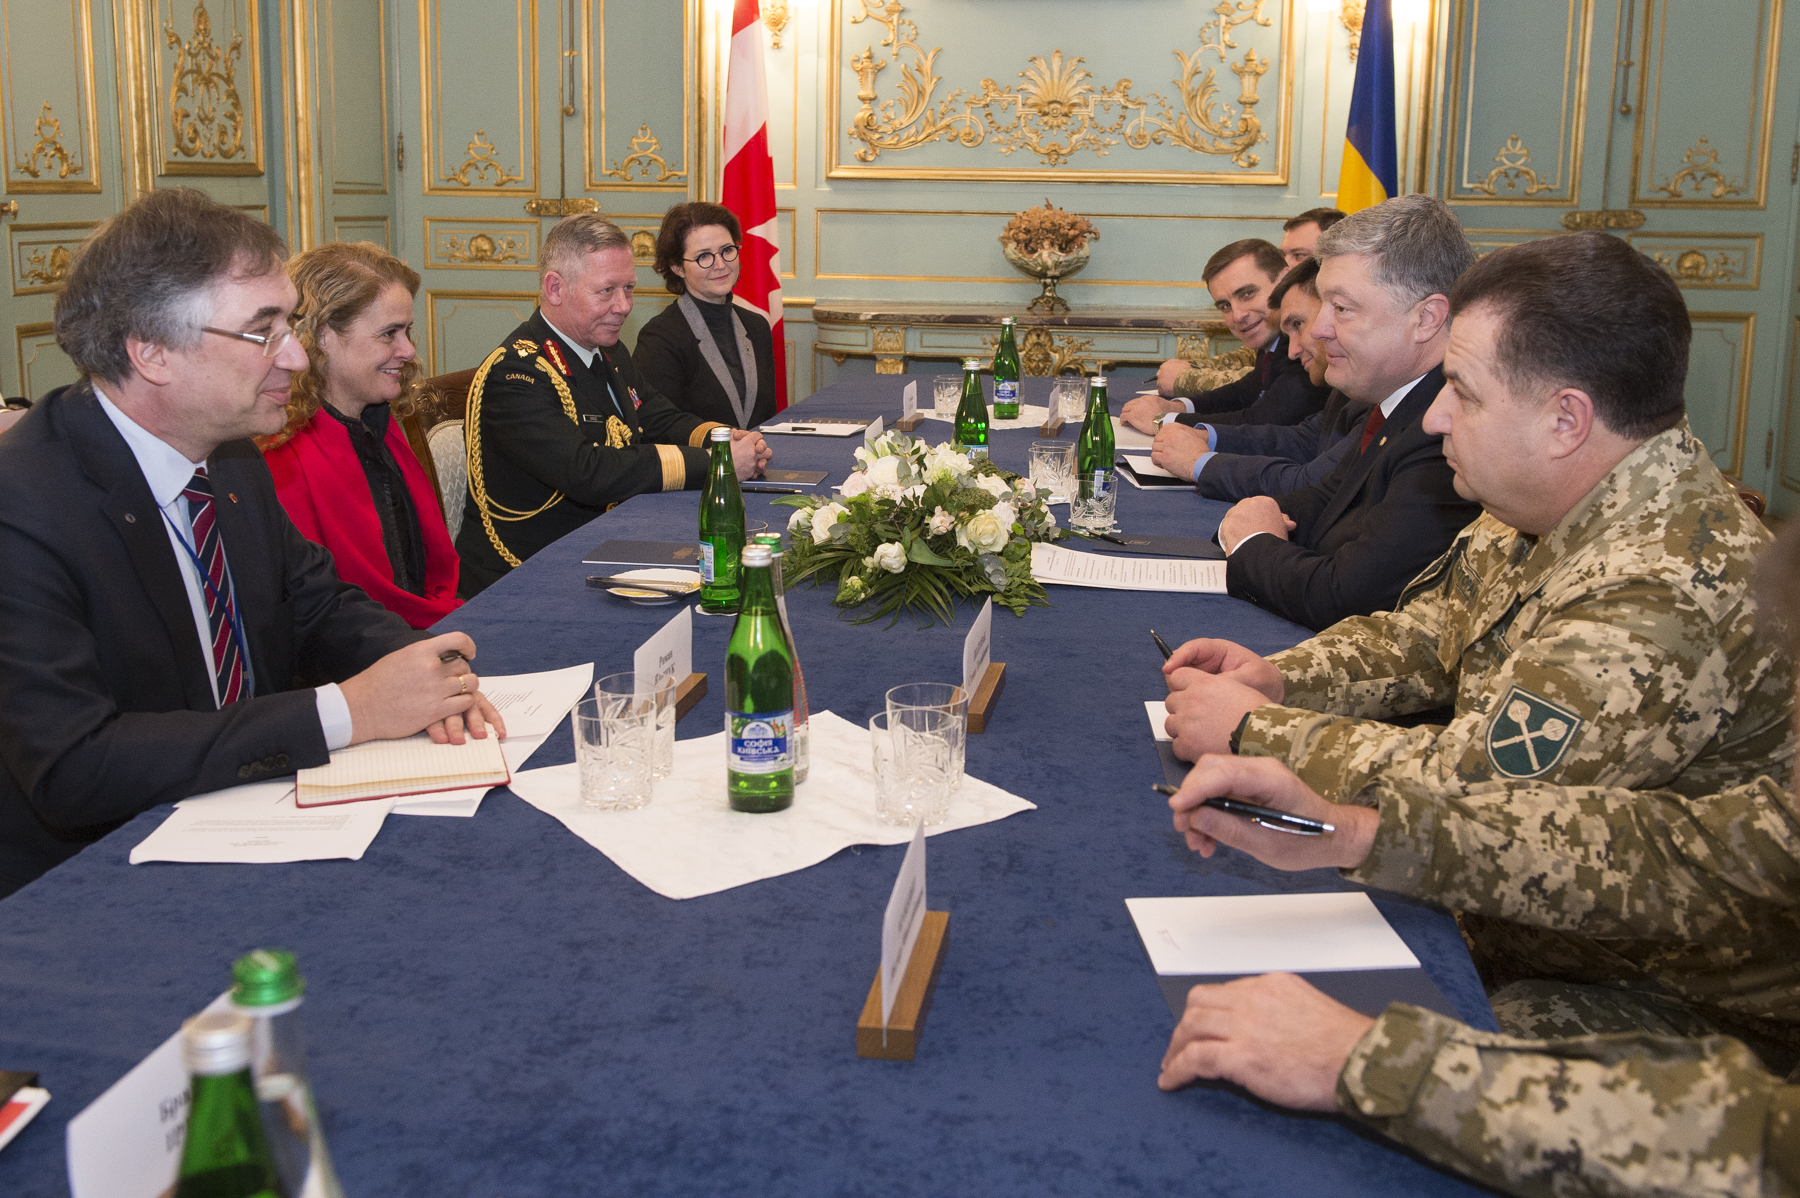 Her Excellency and President Poroshenko discussed Canada-Ukraine bilateral relations.